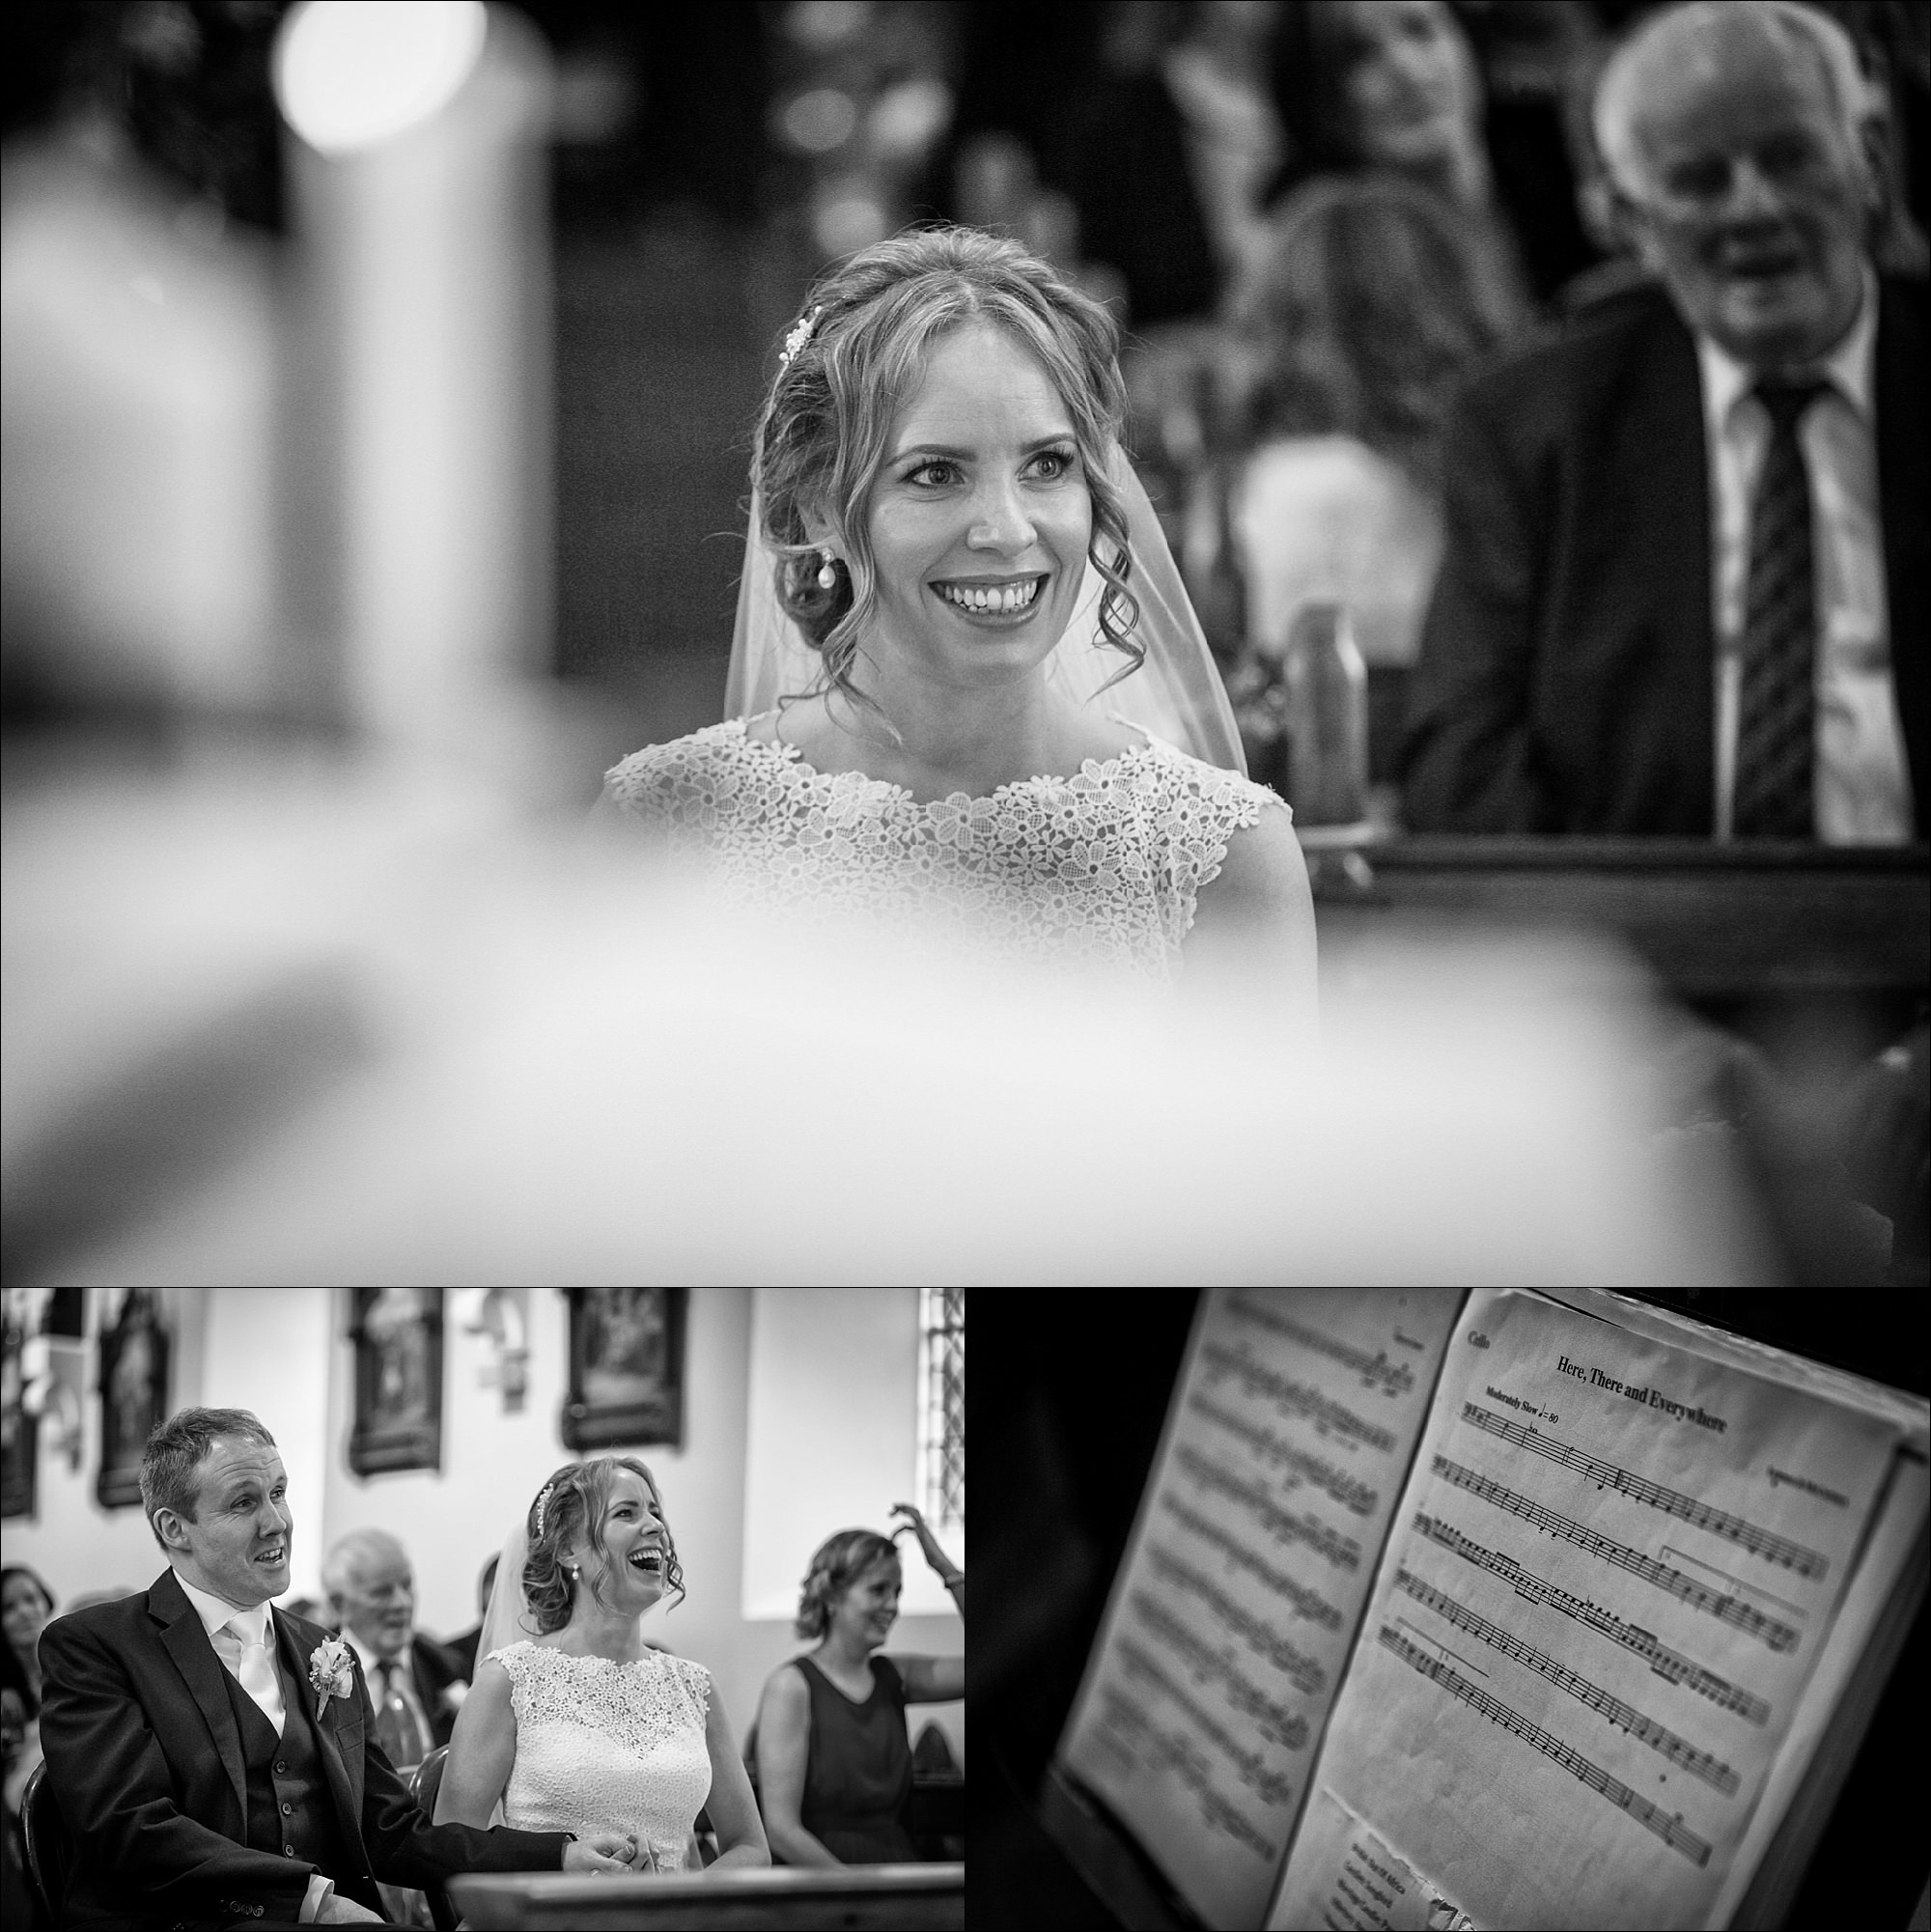 dublin wedding photographer david duignan photography tankardstown weddings slane rathfeigh church ireland 0023